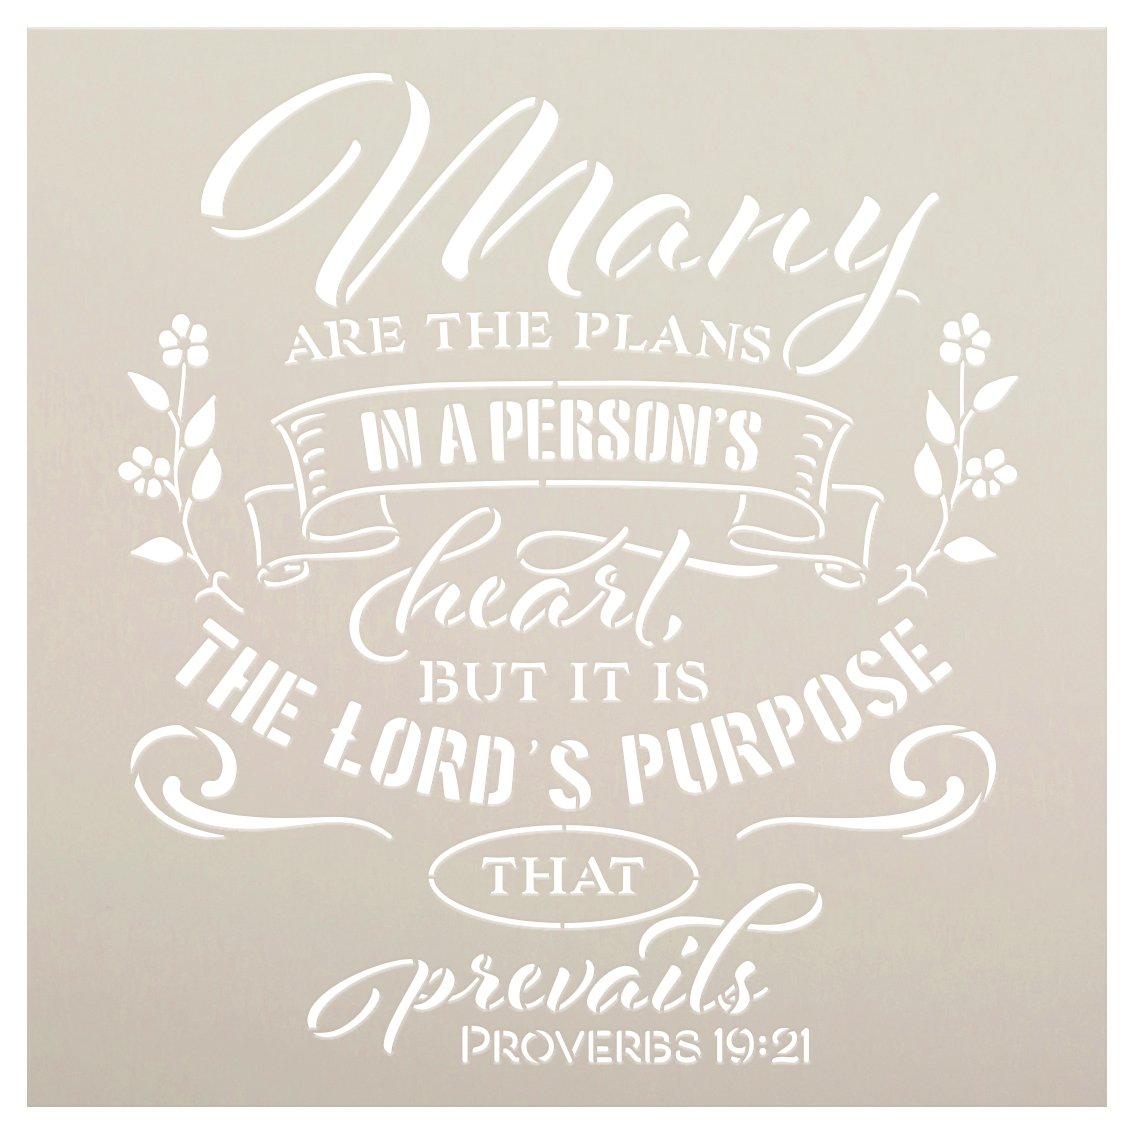 The Lord's Purpose Prevails Stencil by StudioR12   Proverbs 19:21 Bible Verse   DIY Inspirational Faith Farmhouse Home Decor   Select Size